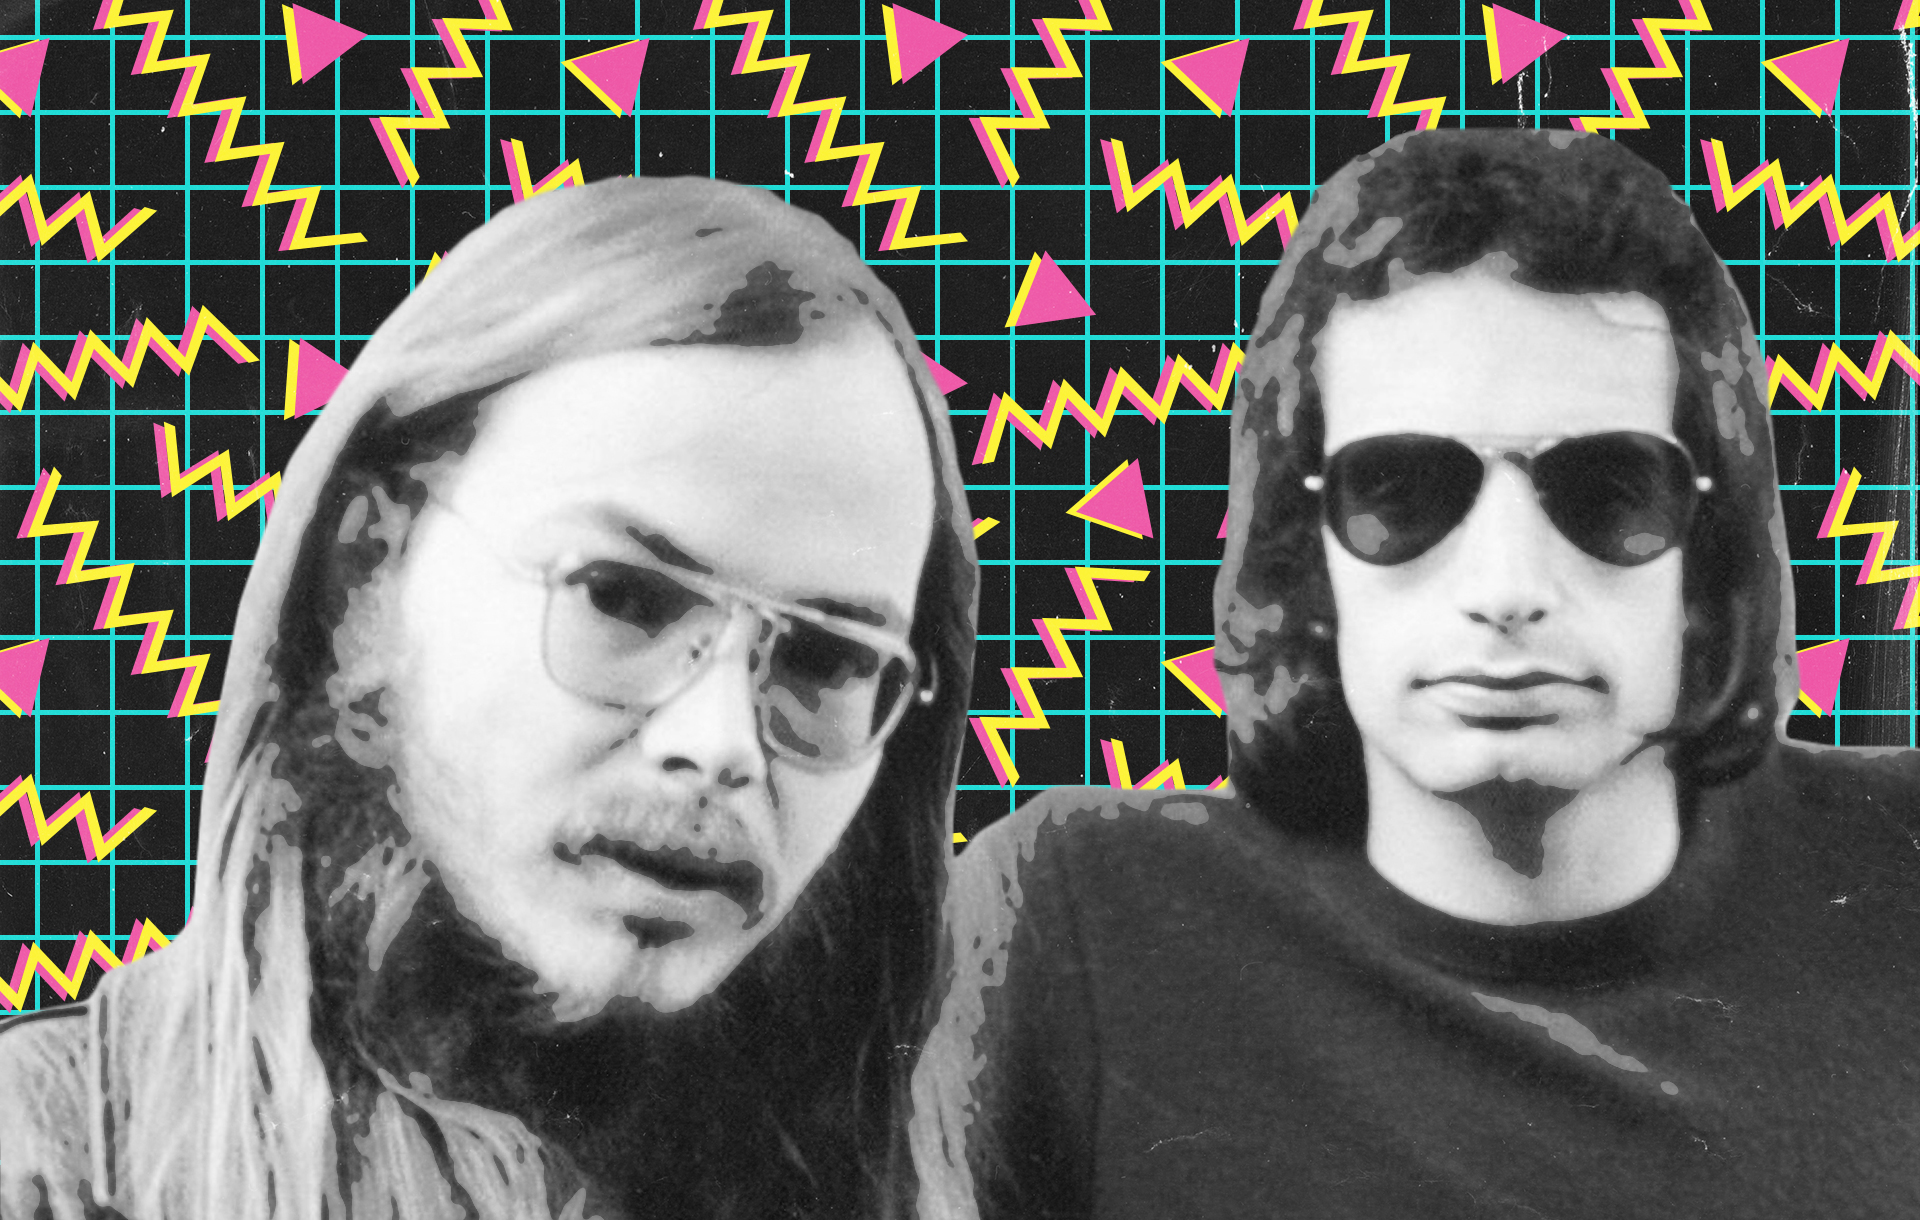 Steely Dan - What's In A Word? | Features | LIVING LIFE FEARLESS